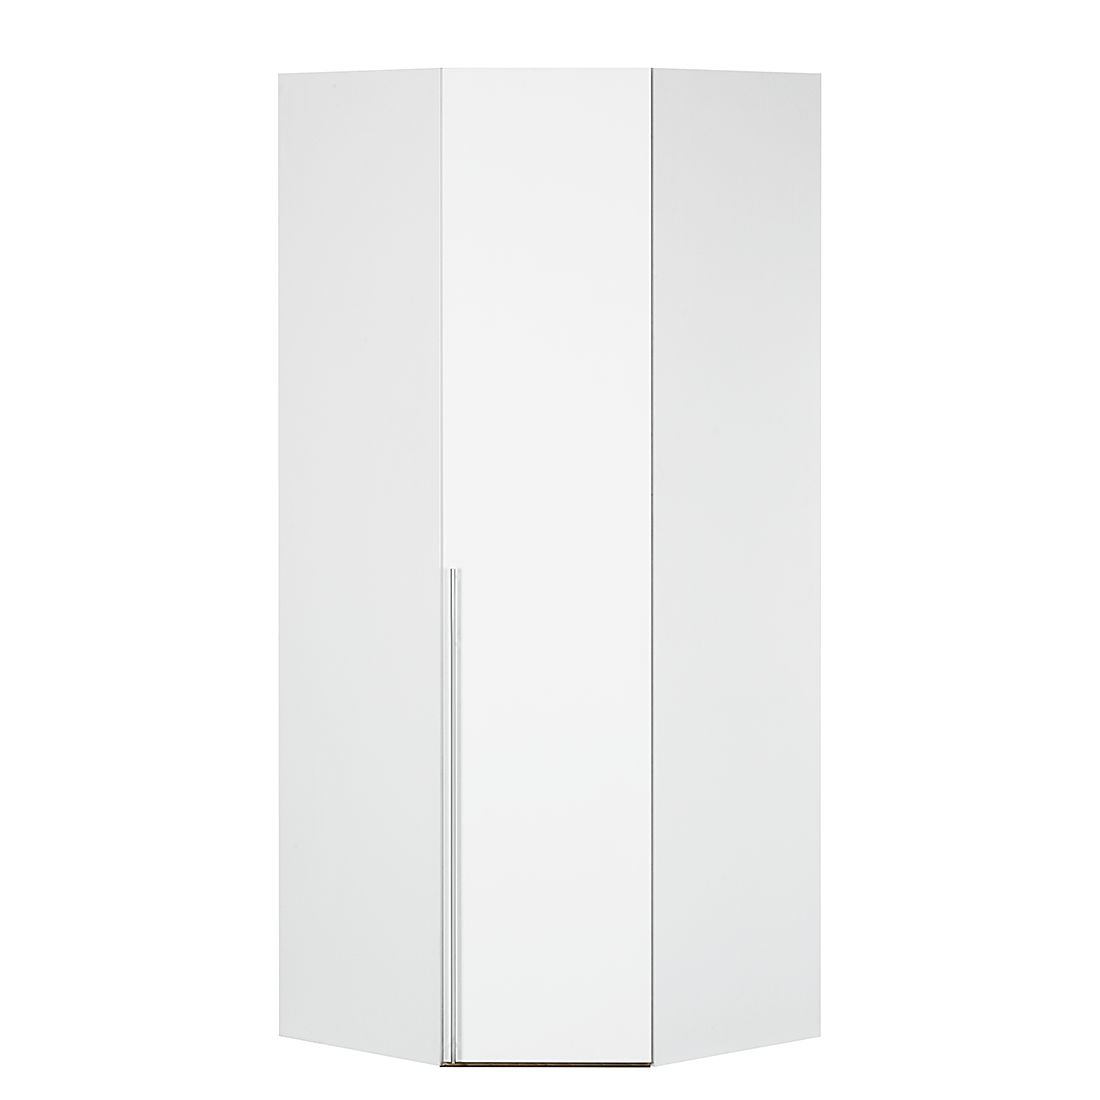 Armoire d'angle Brooklyn I - Blanc polaire - 216 cm, Express Möbel